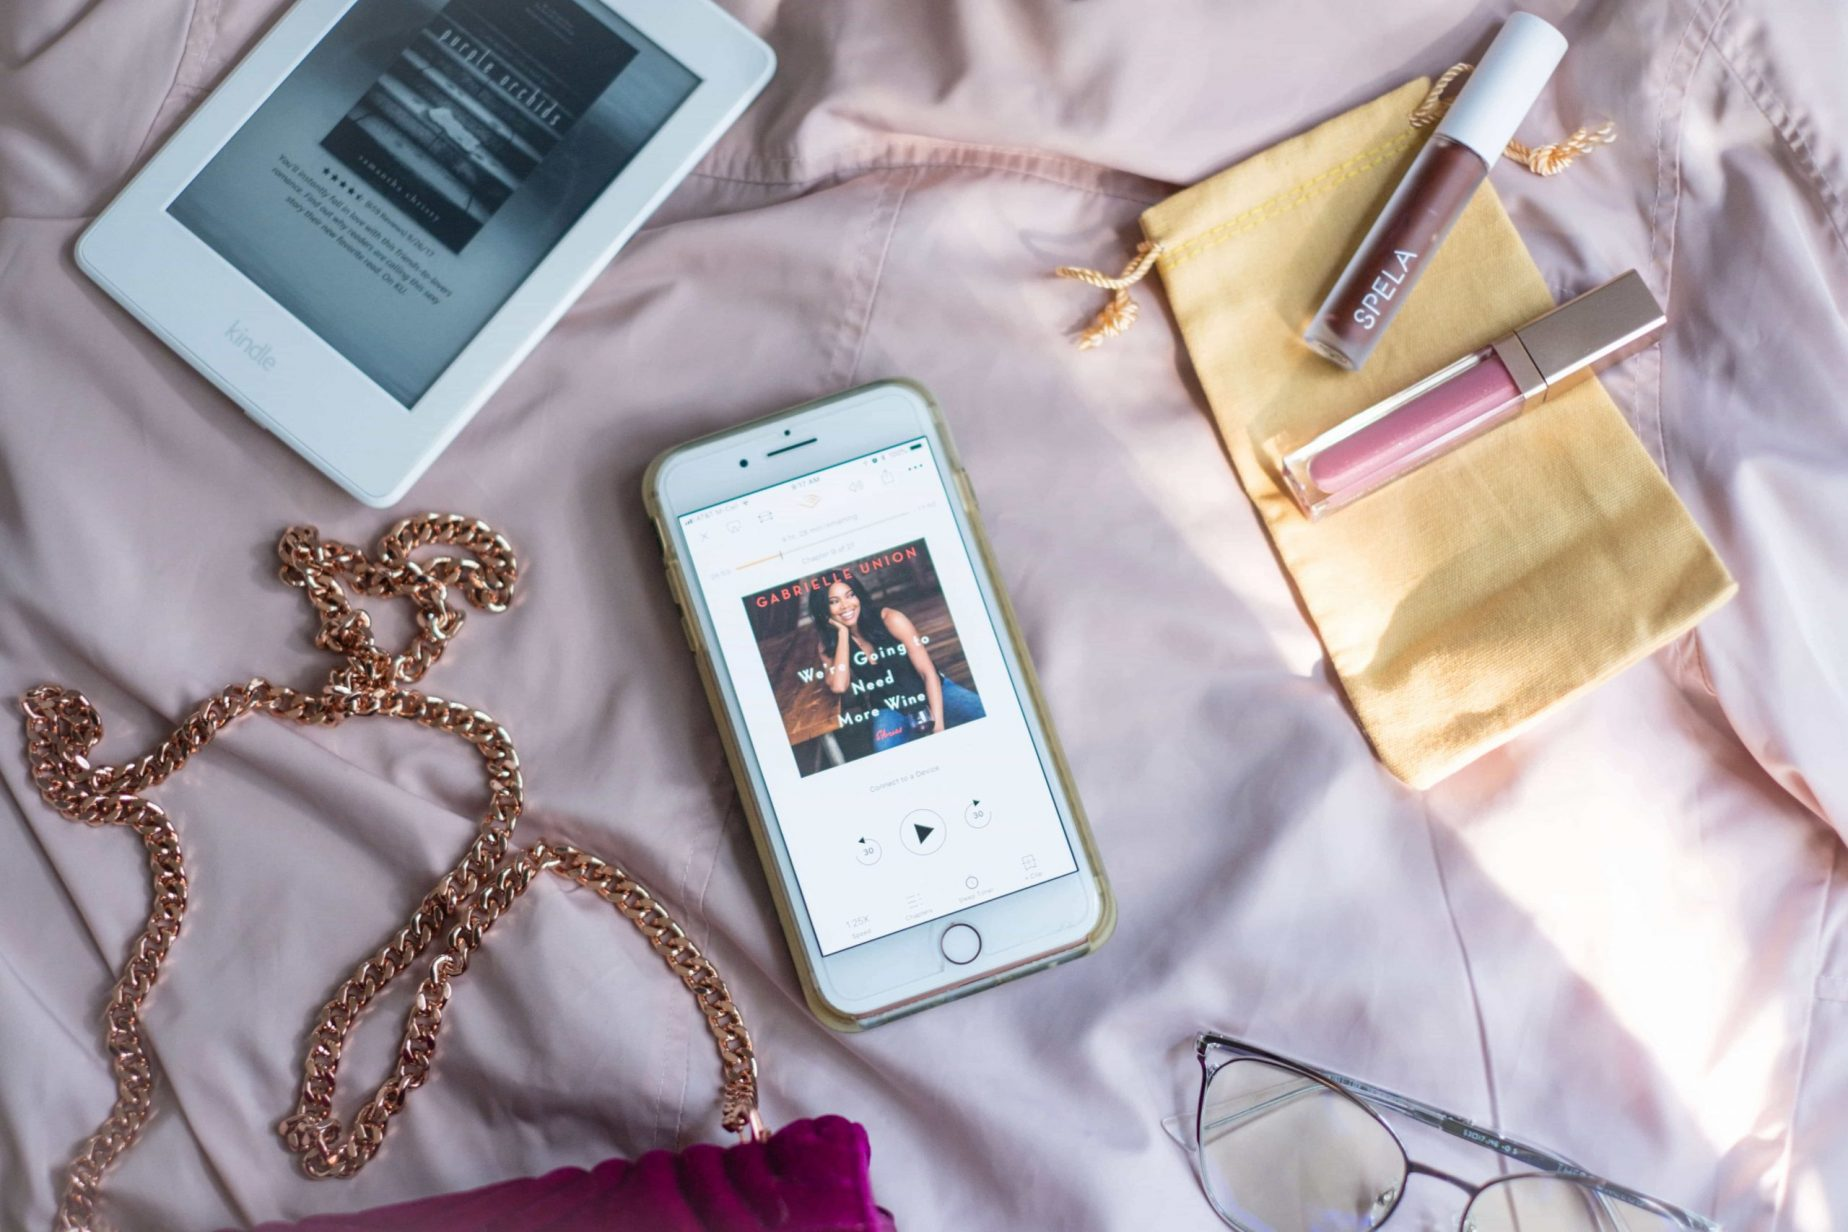 5 Audiobooks That Are Even Better Than The Book #whatsavvysaid #audiobooks #bookworm #audible #myaudible